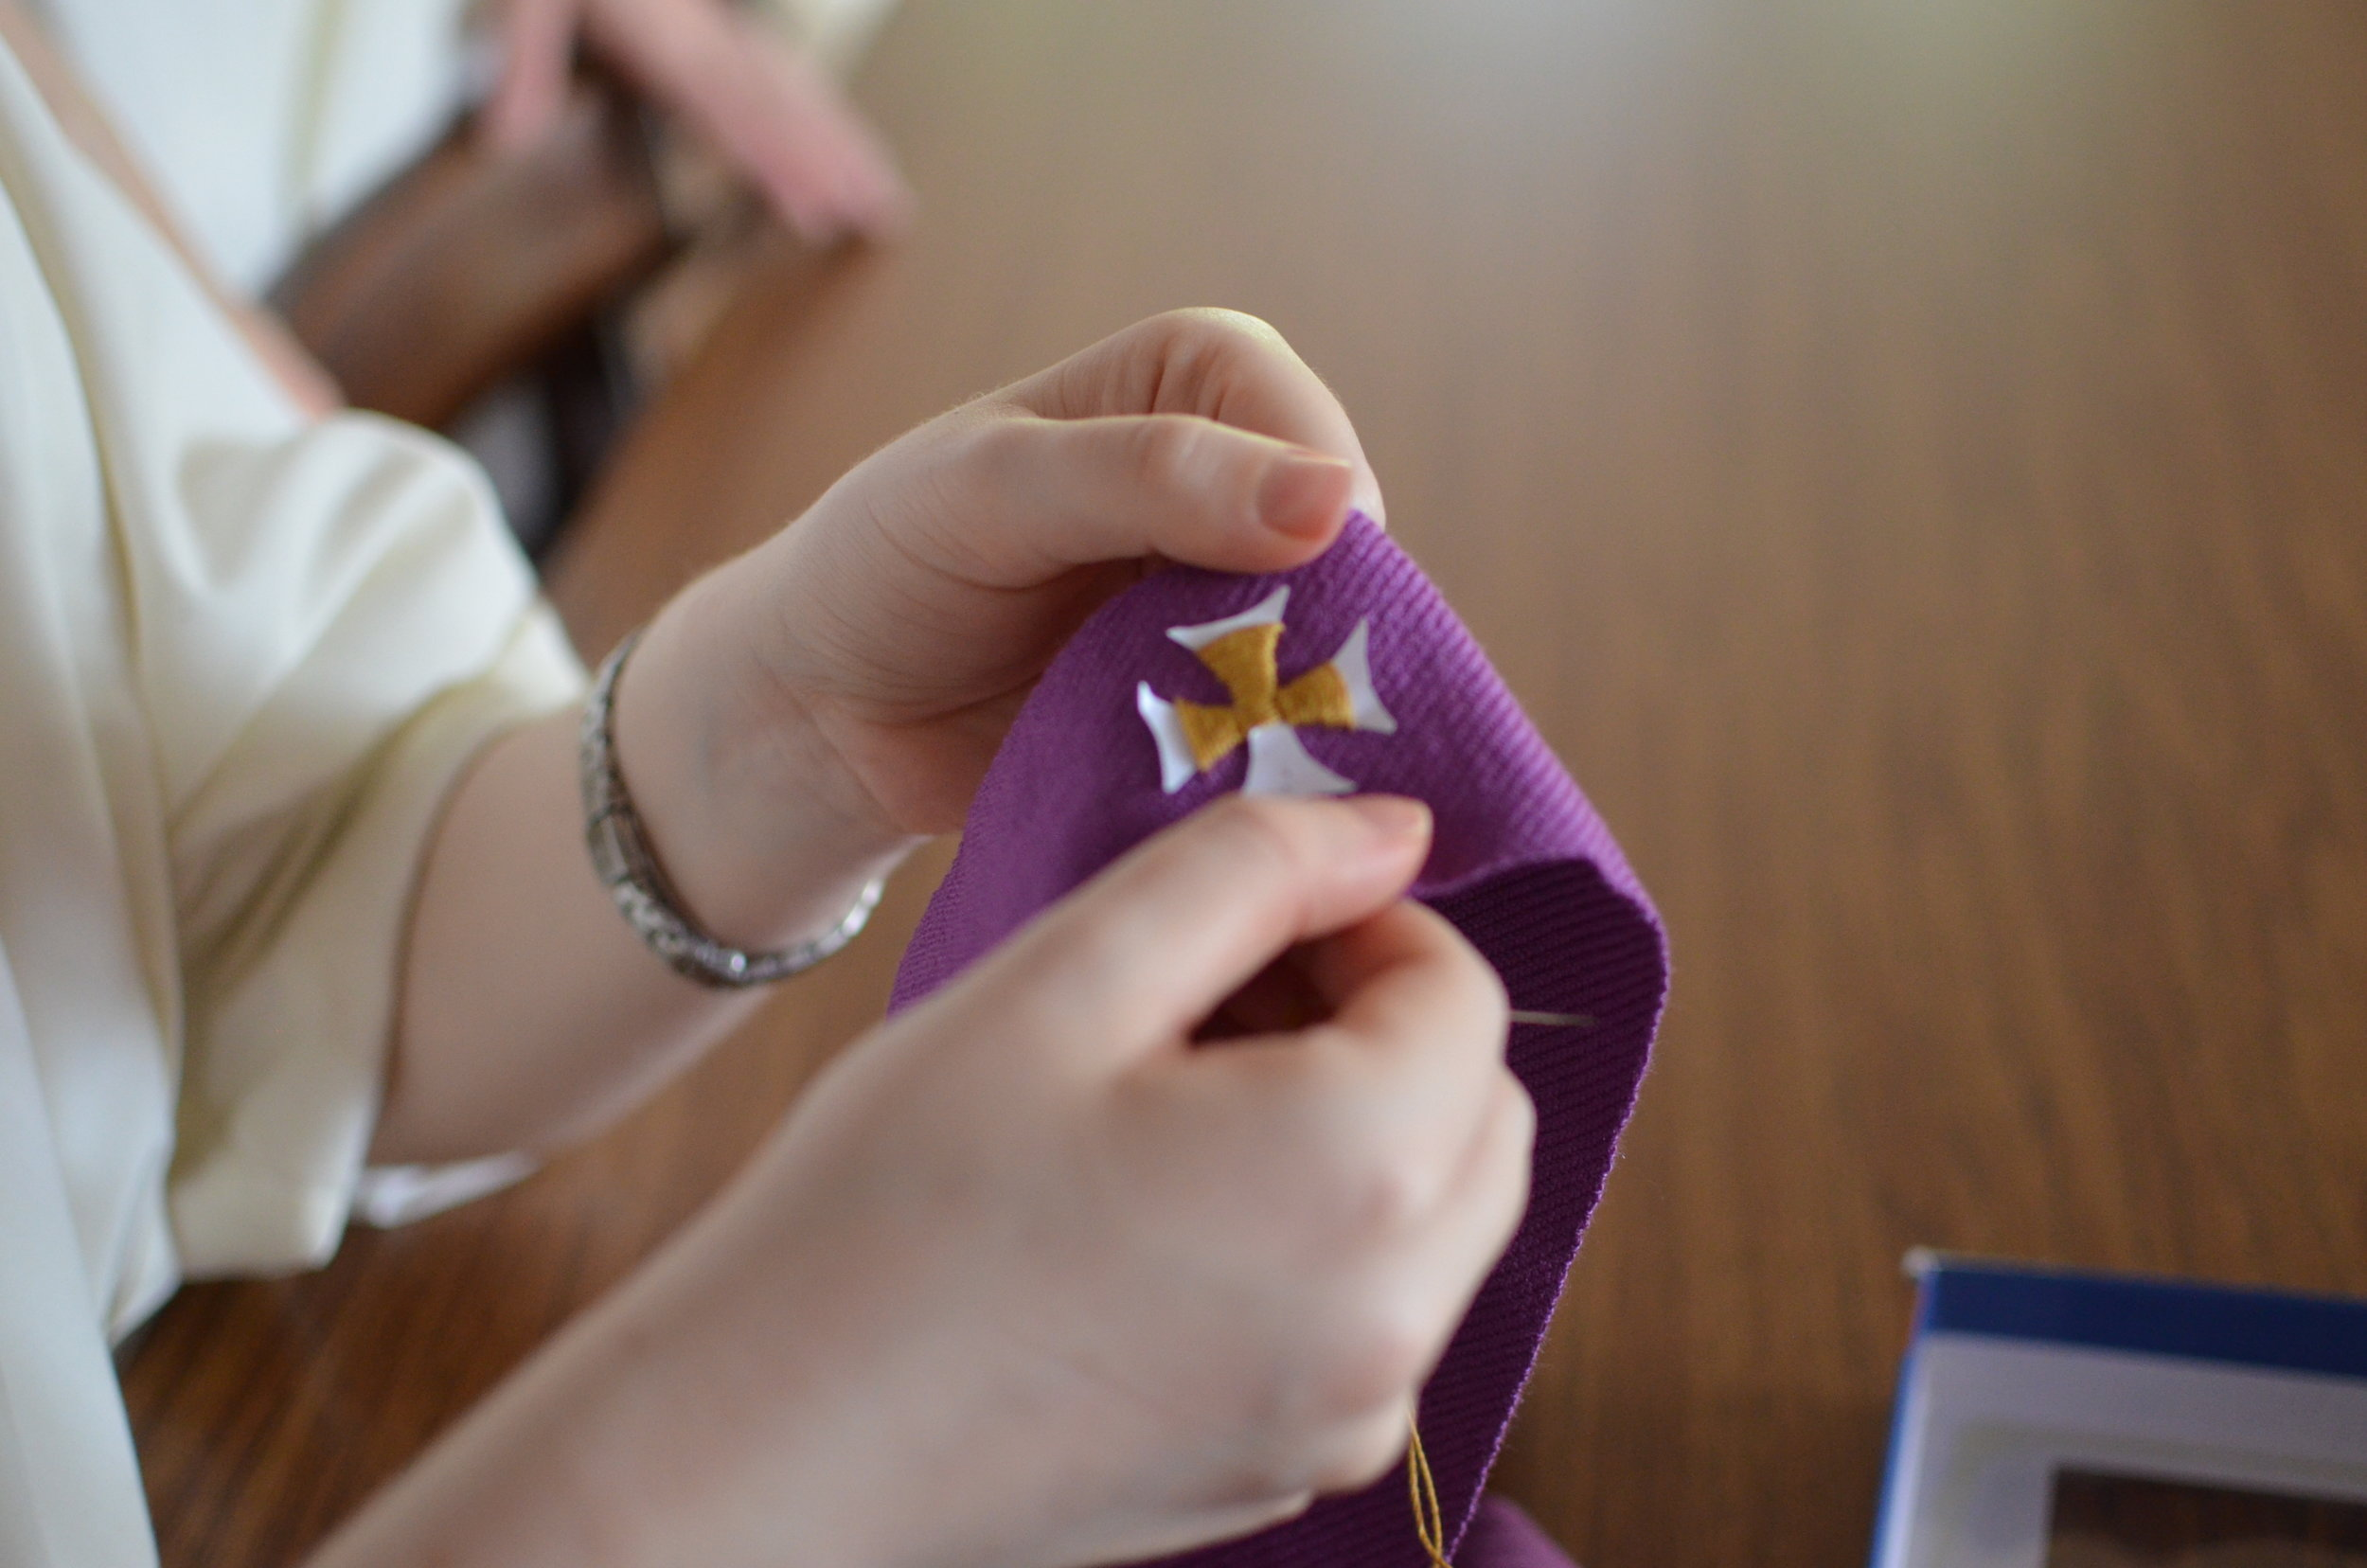 7) The last part is embroidering on at least the middle cross. Here Sr. Mary Veronica is embroidering on the cross.